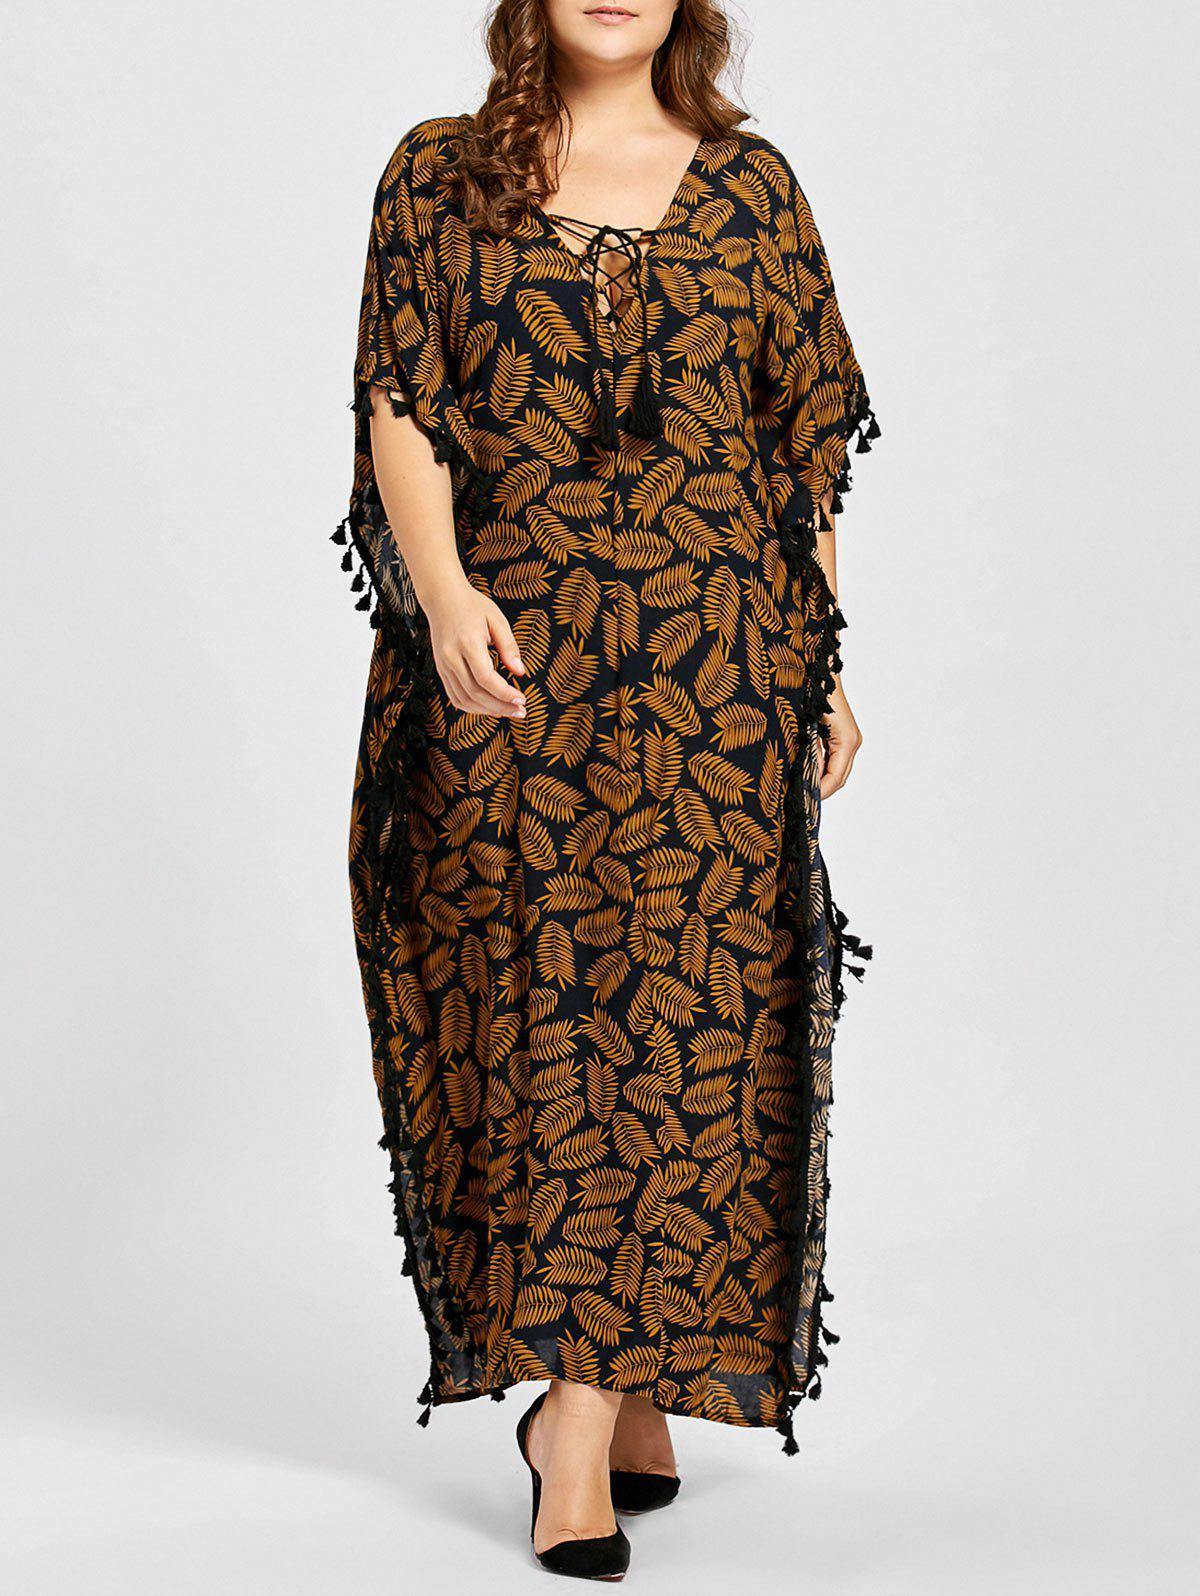 Plus Size Lace Up Tassel Leaf Print Poncho Dress leaf print tassel table runner